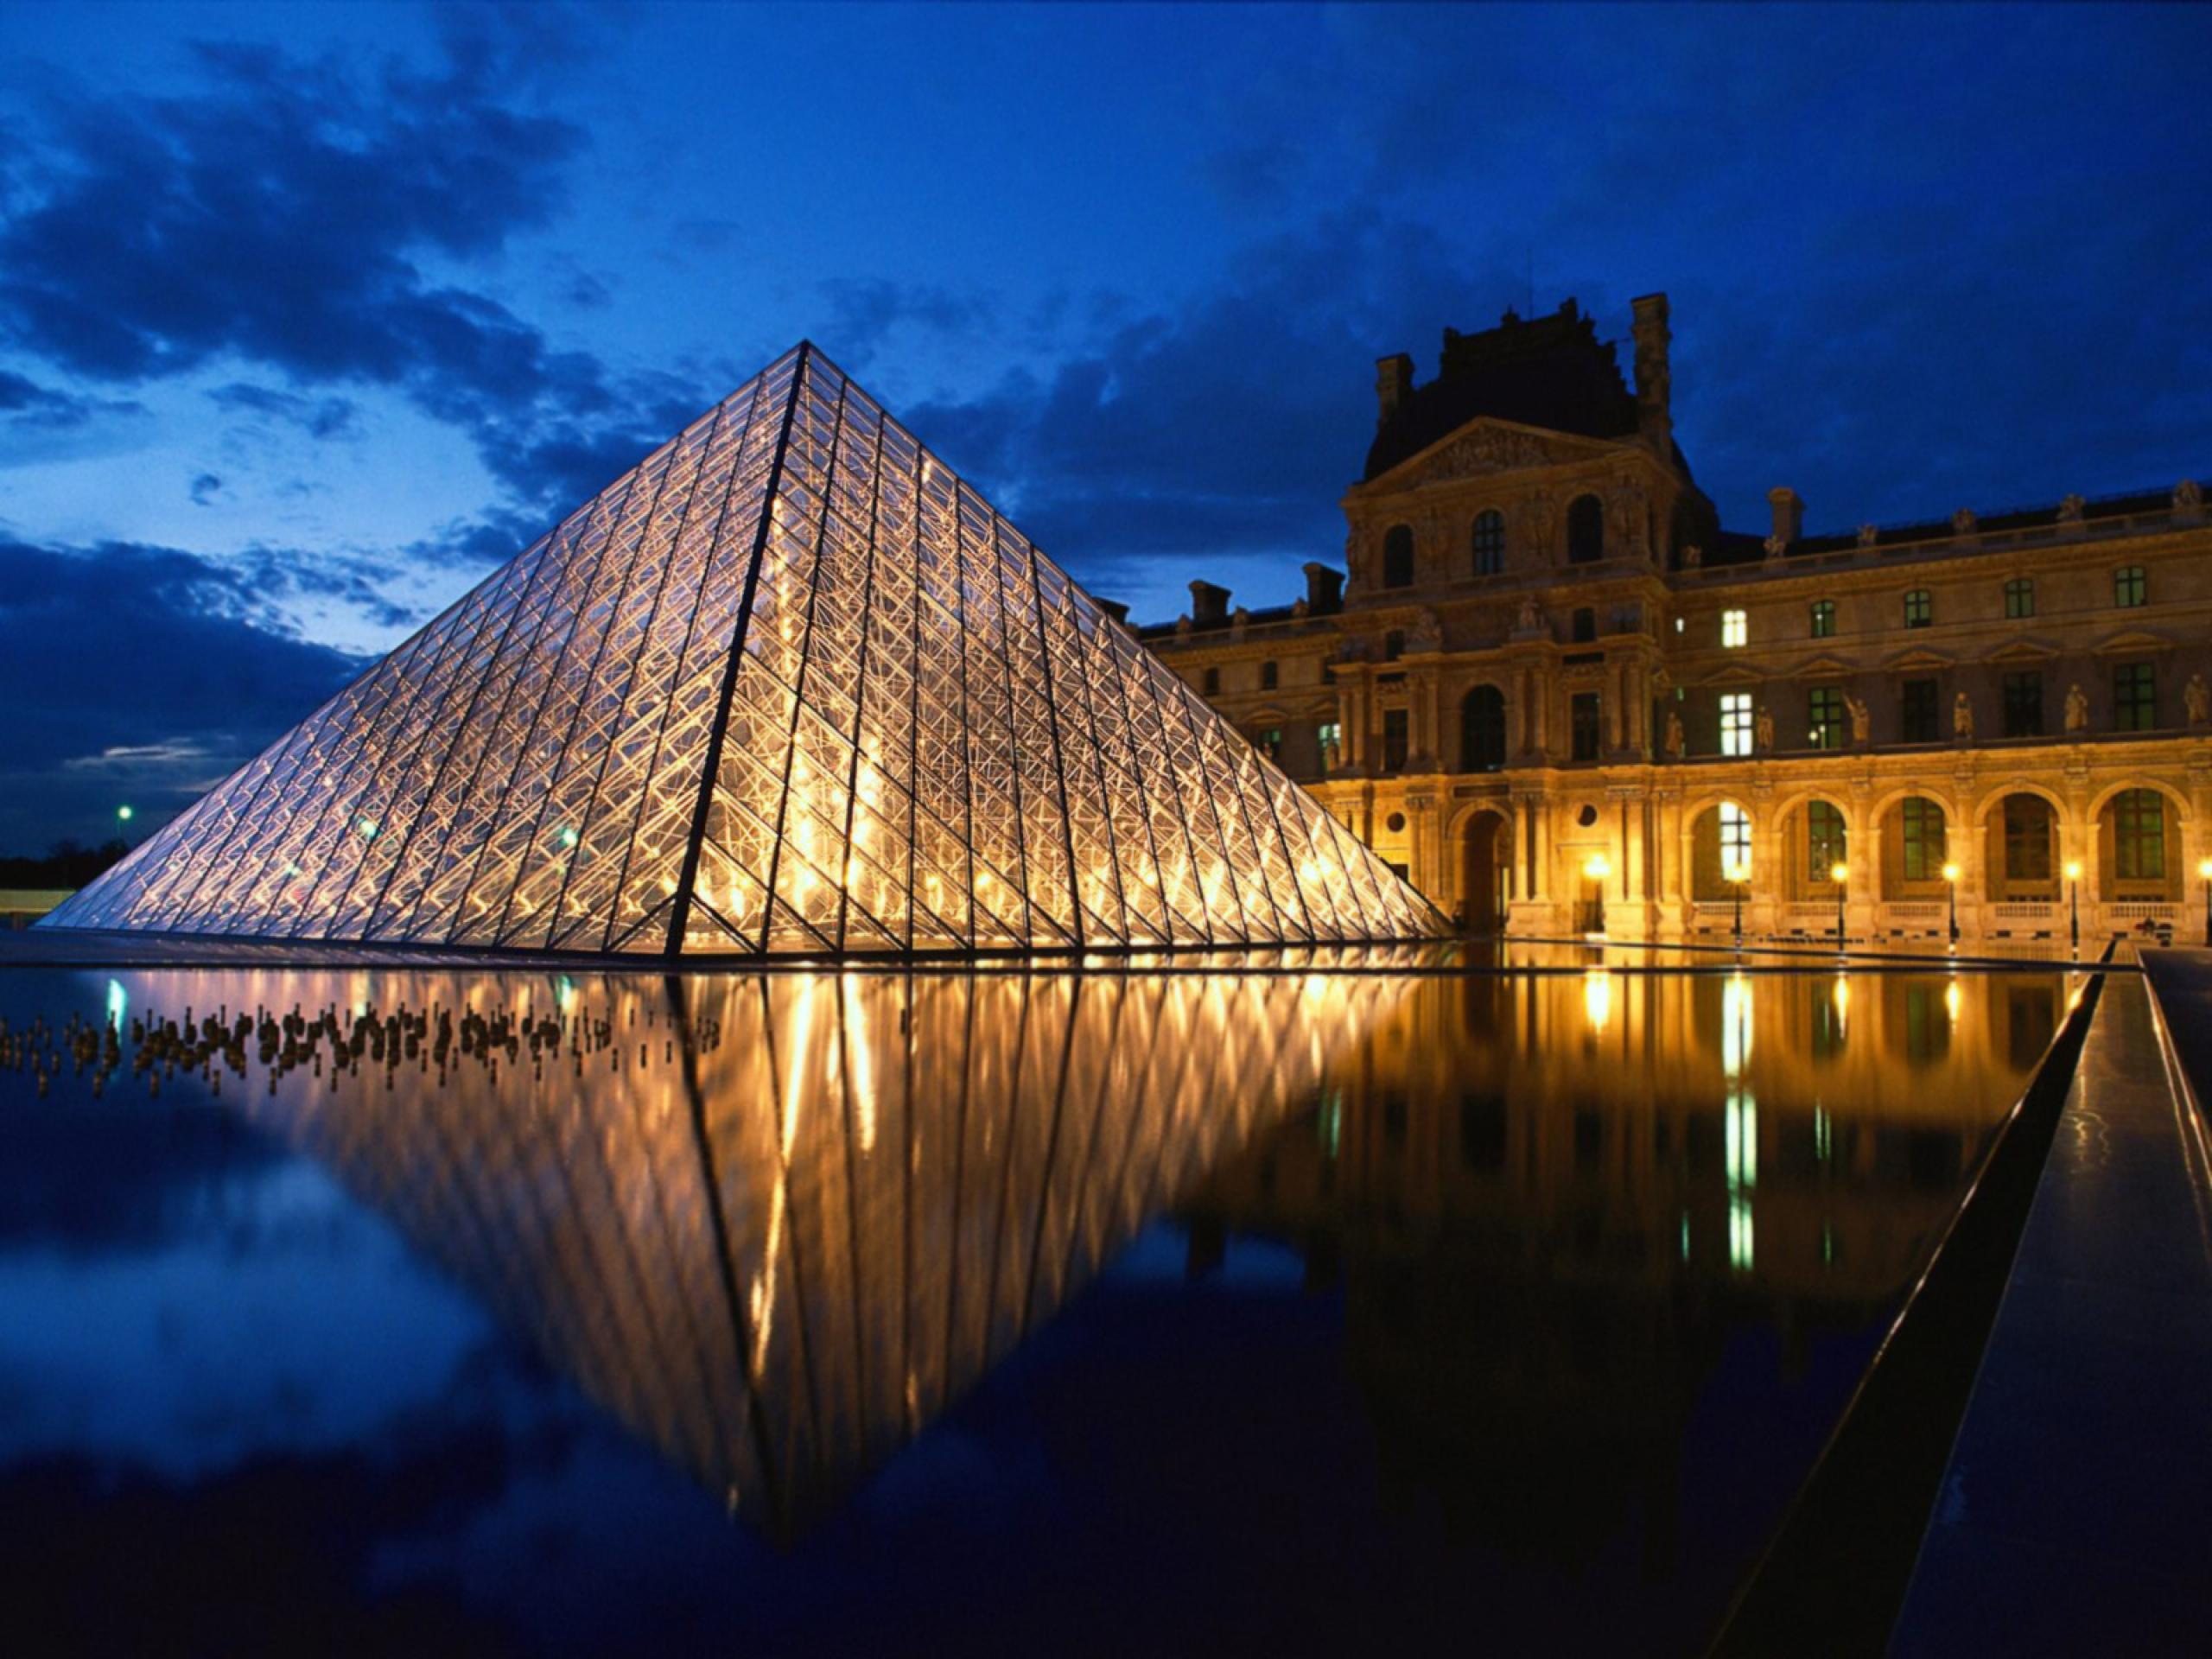 Le Louvre Paris France Wallpaper Download cool HD wallpapers here 2560x1920